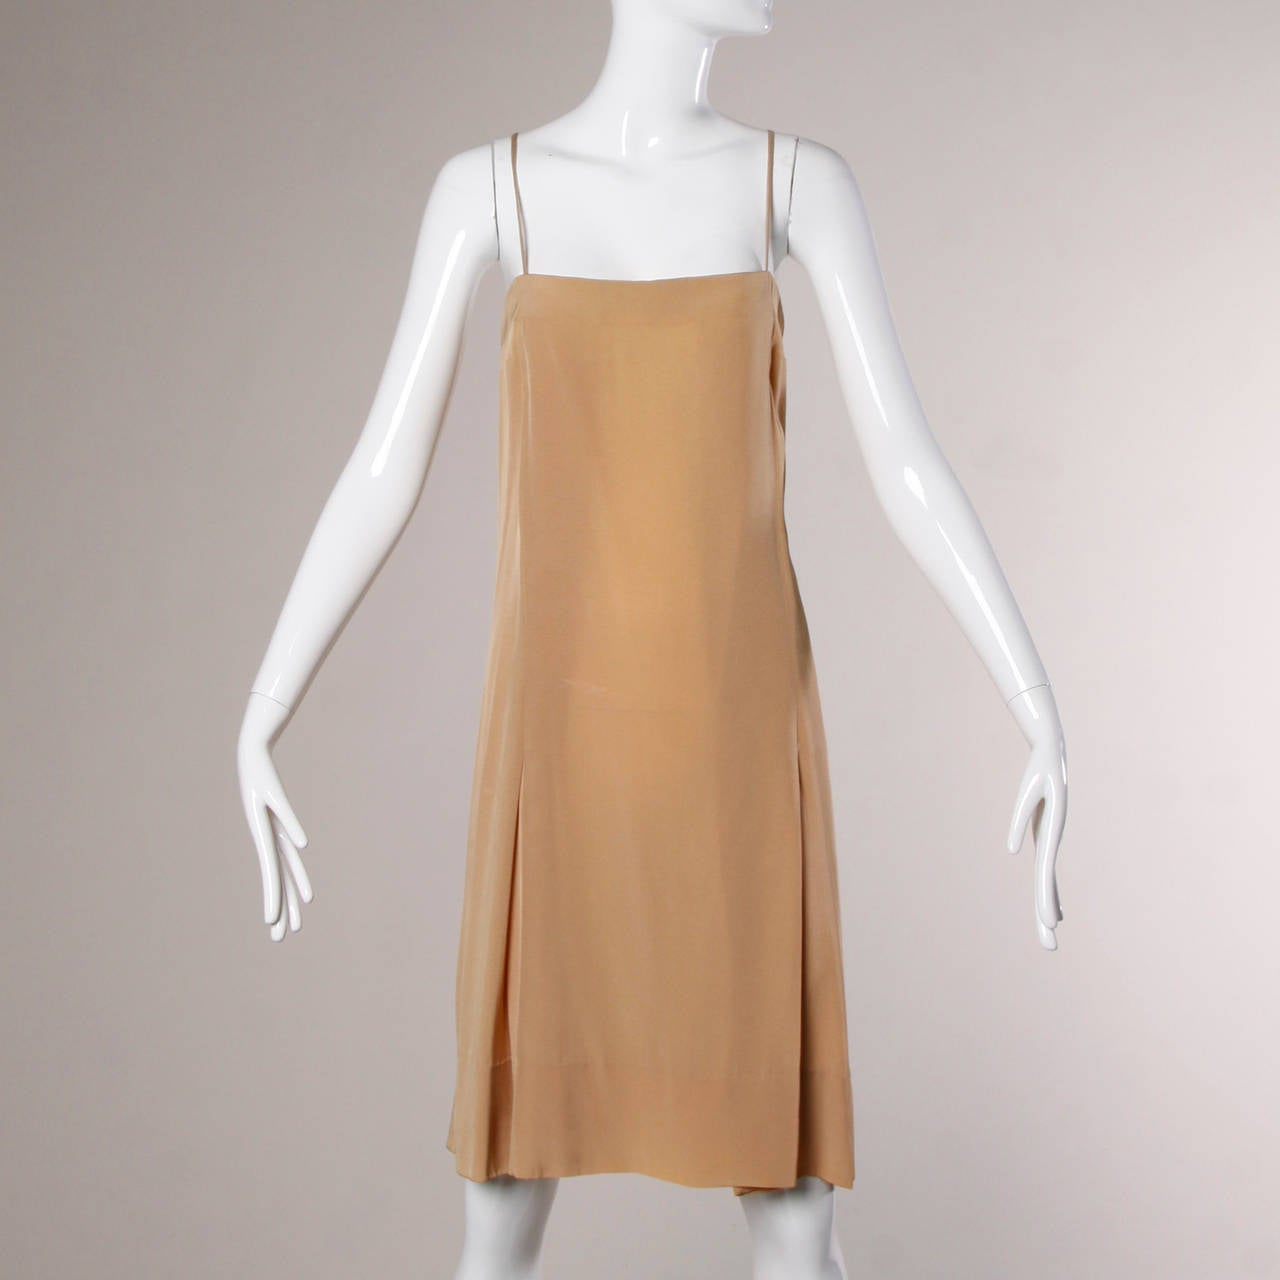 Pauline Trigere Vintage 1970s Metallic Silk 3-Piece Dress + Sash 8